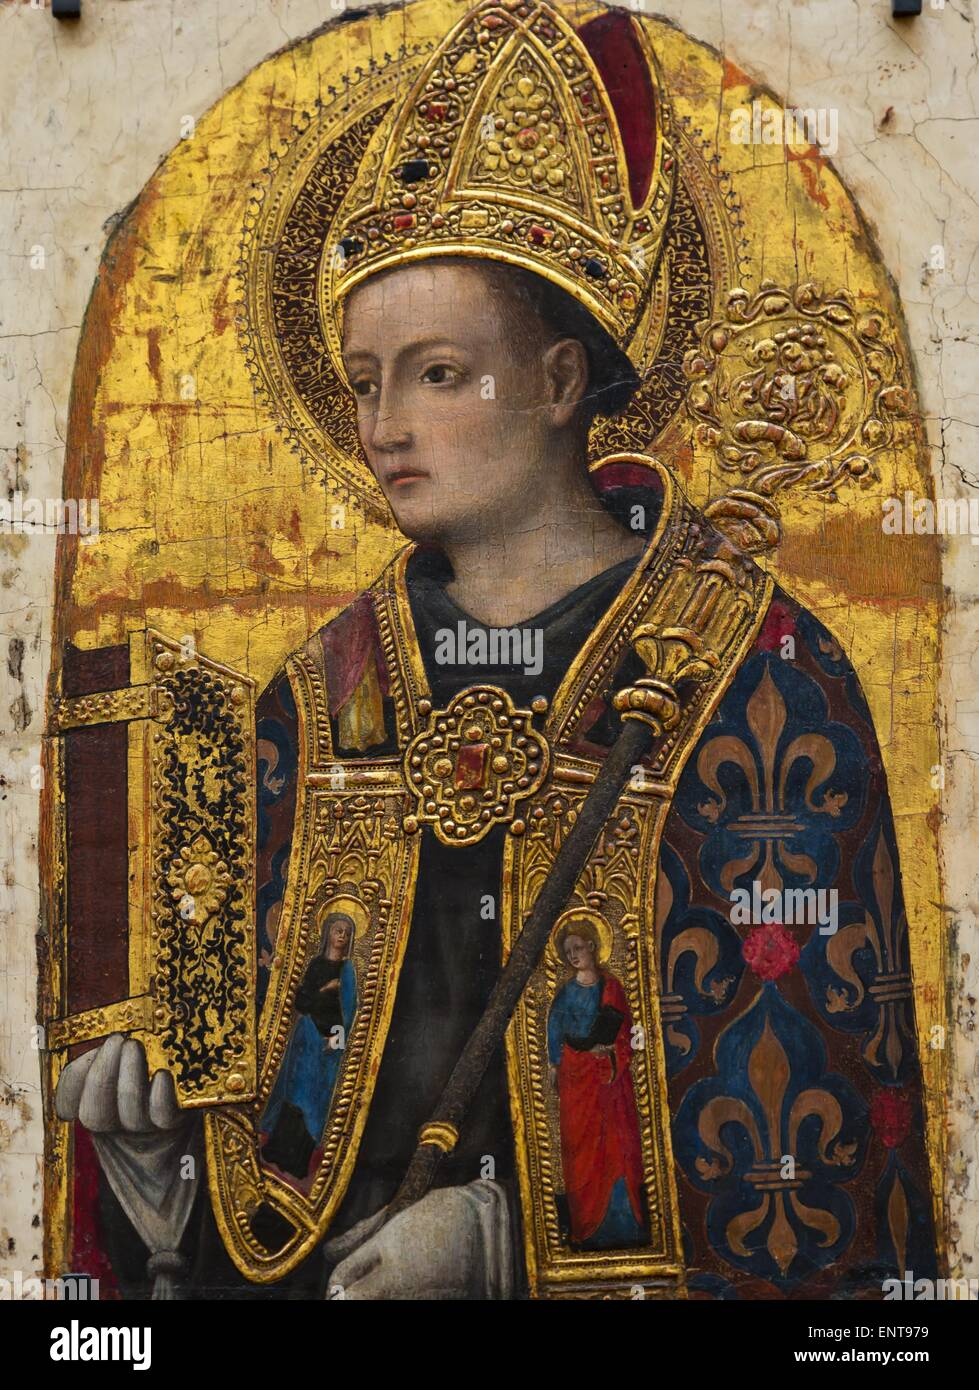 Saint Louis of Toulouse Tempera on wood, gold foil 26/09/2013 - Antiquity Collection - Stock Image